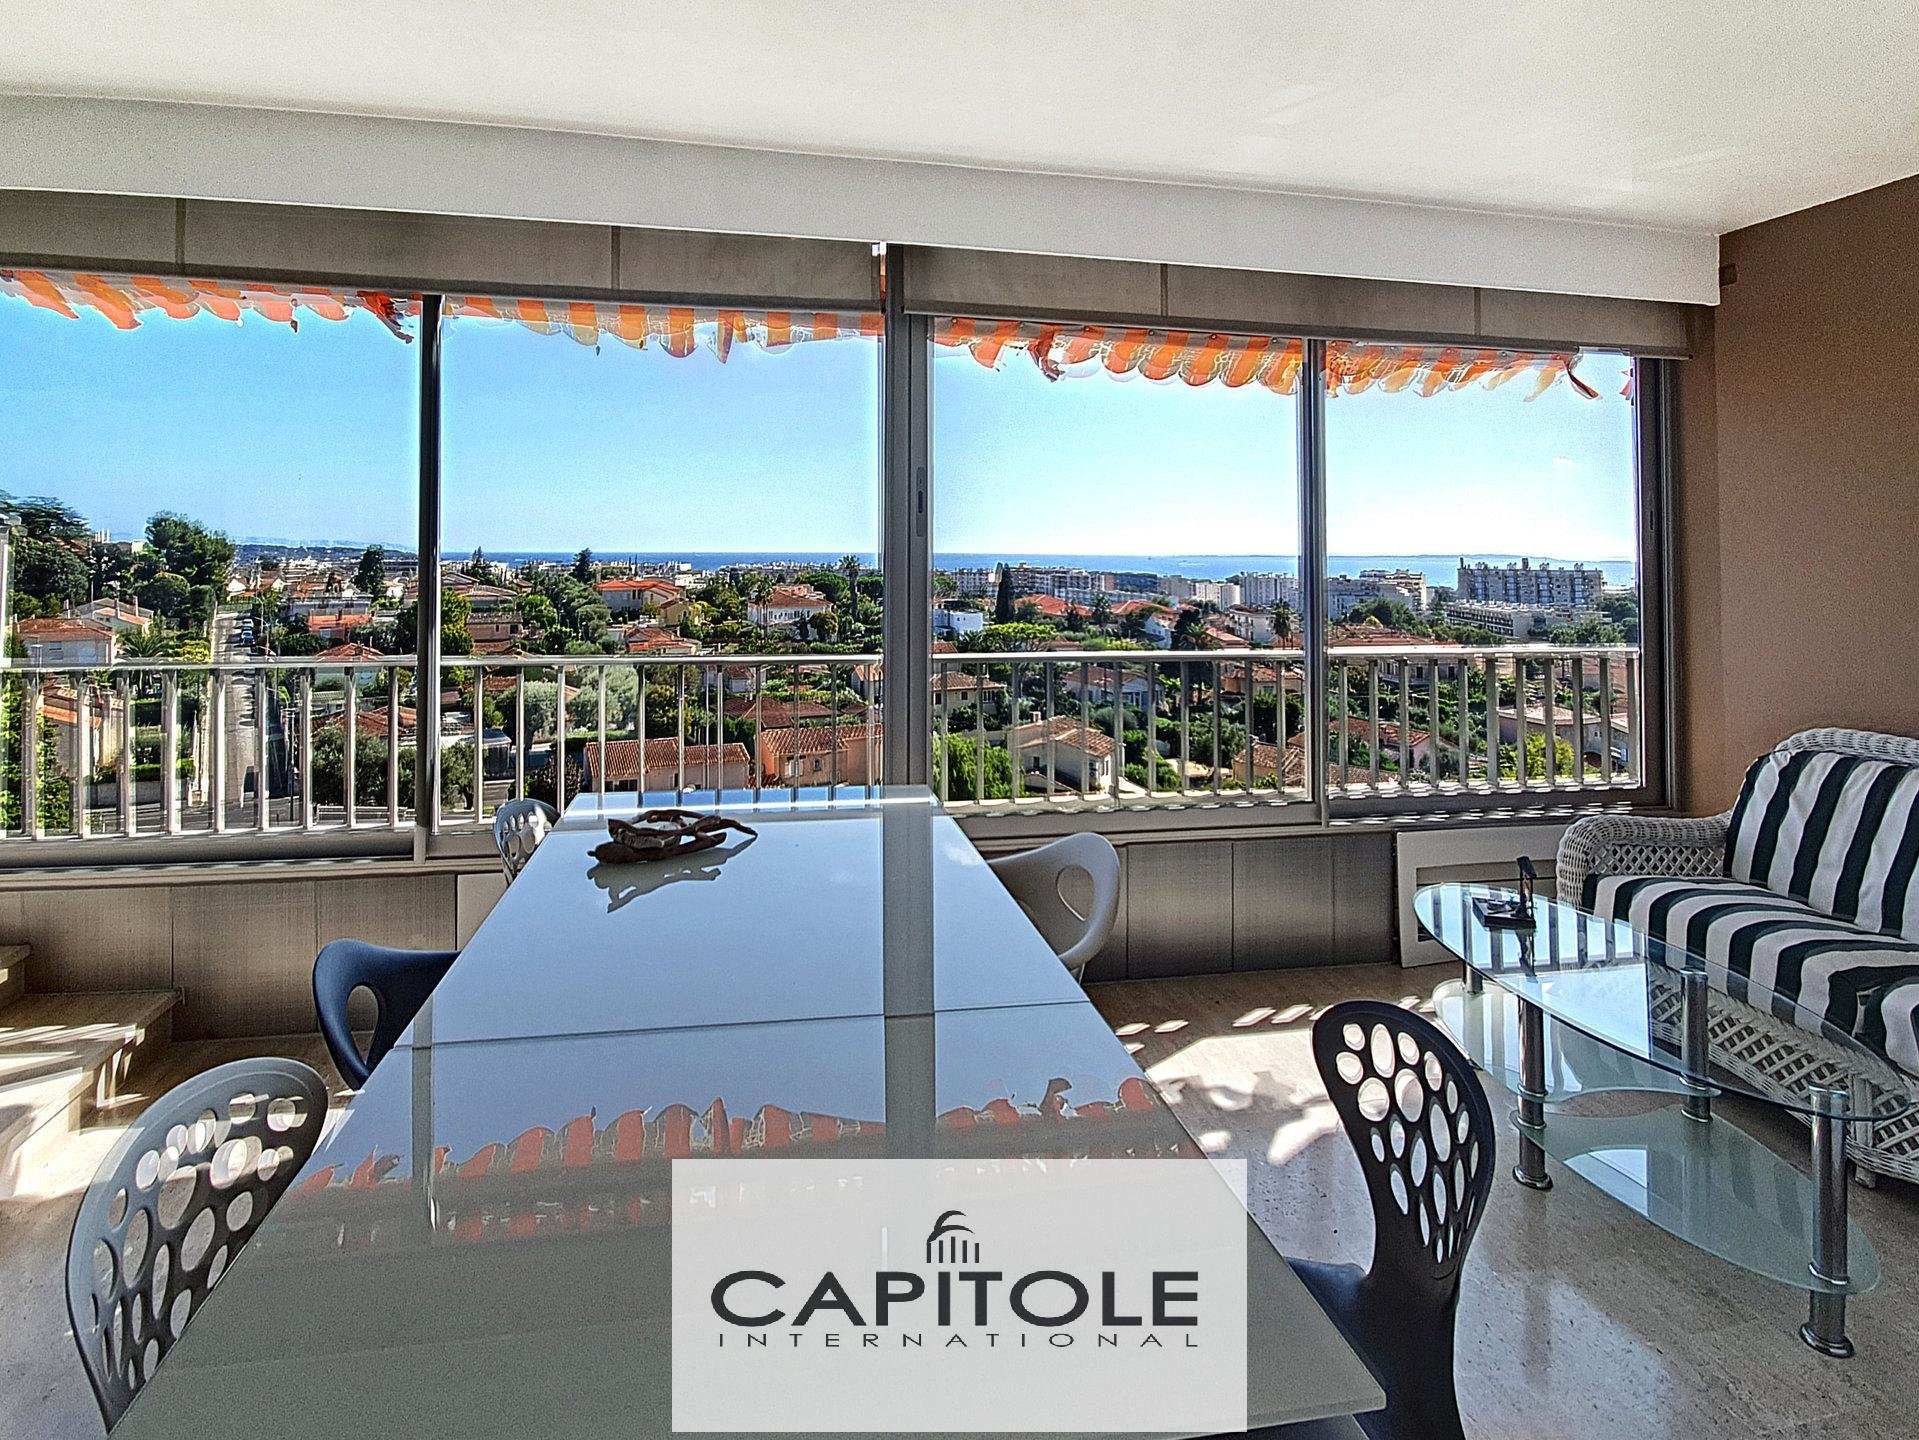 For sale, Antibes, panoramic sea view penthouse, cellar, parking, garage